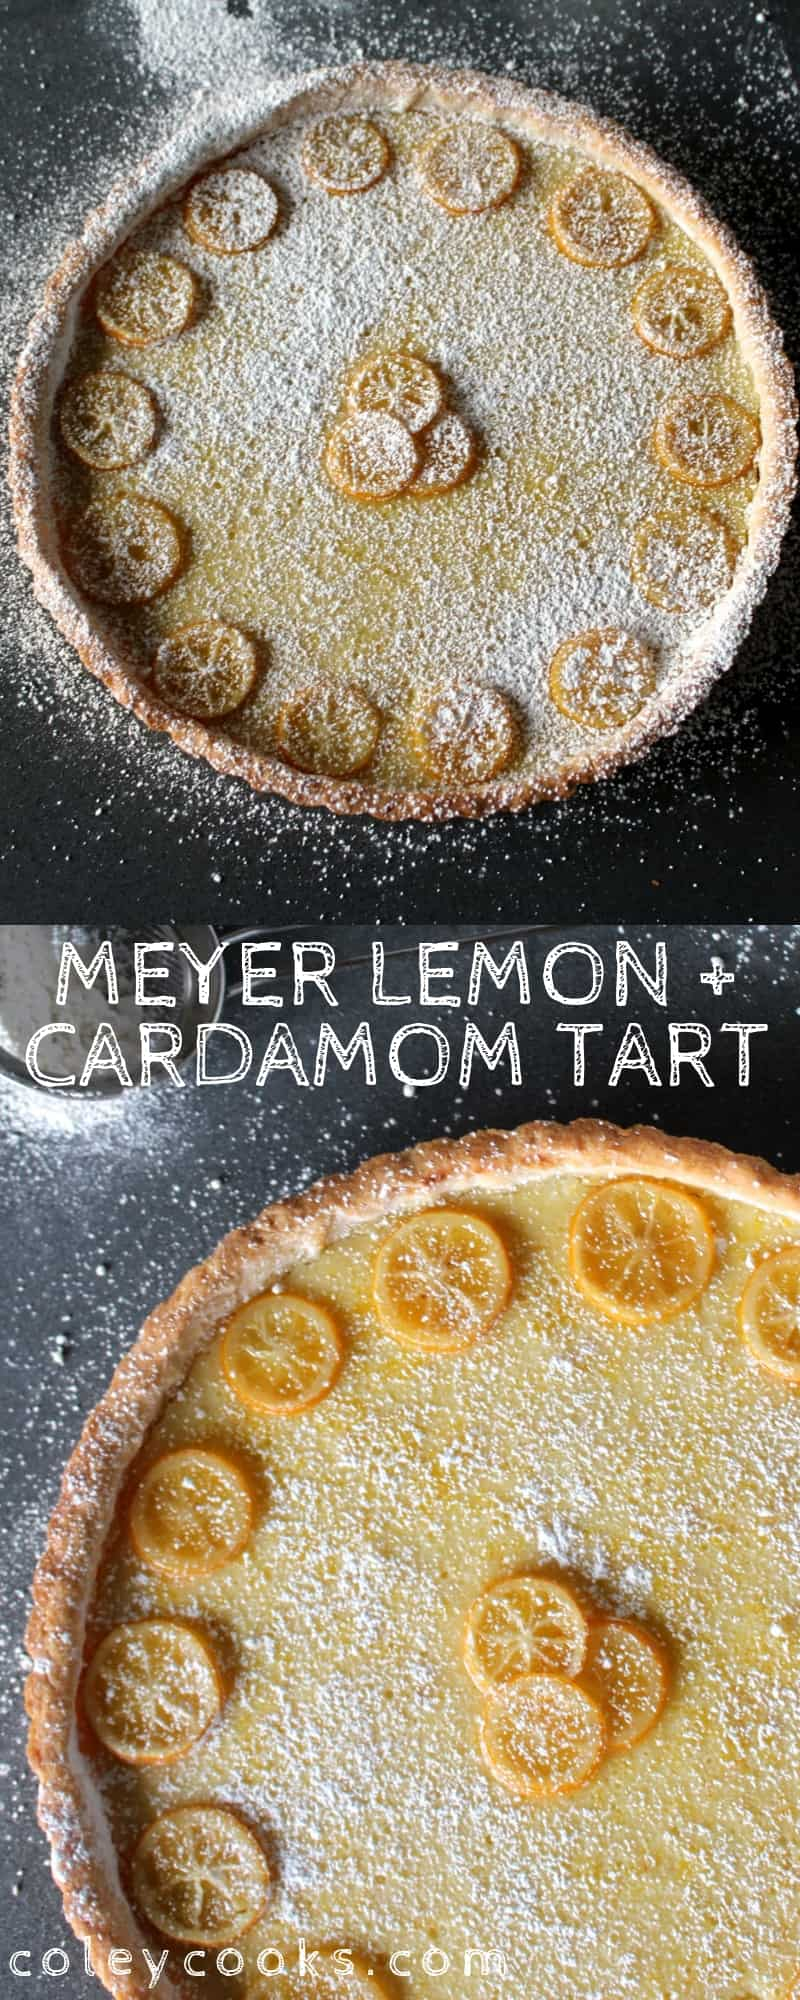 This Meyer Lemon and Cardamom Tart showcases one of my favorite flavor pairings of all time: Meyer lemon and cardamom. A bright, citrusy tart that's perfect for spring. #easy #lemon #cardamom #tart #recipe #citrus #dessert | Coleycooks.com